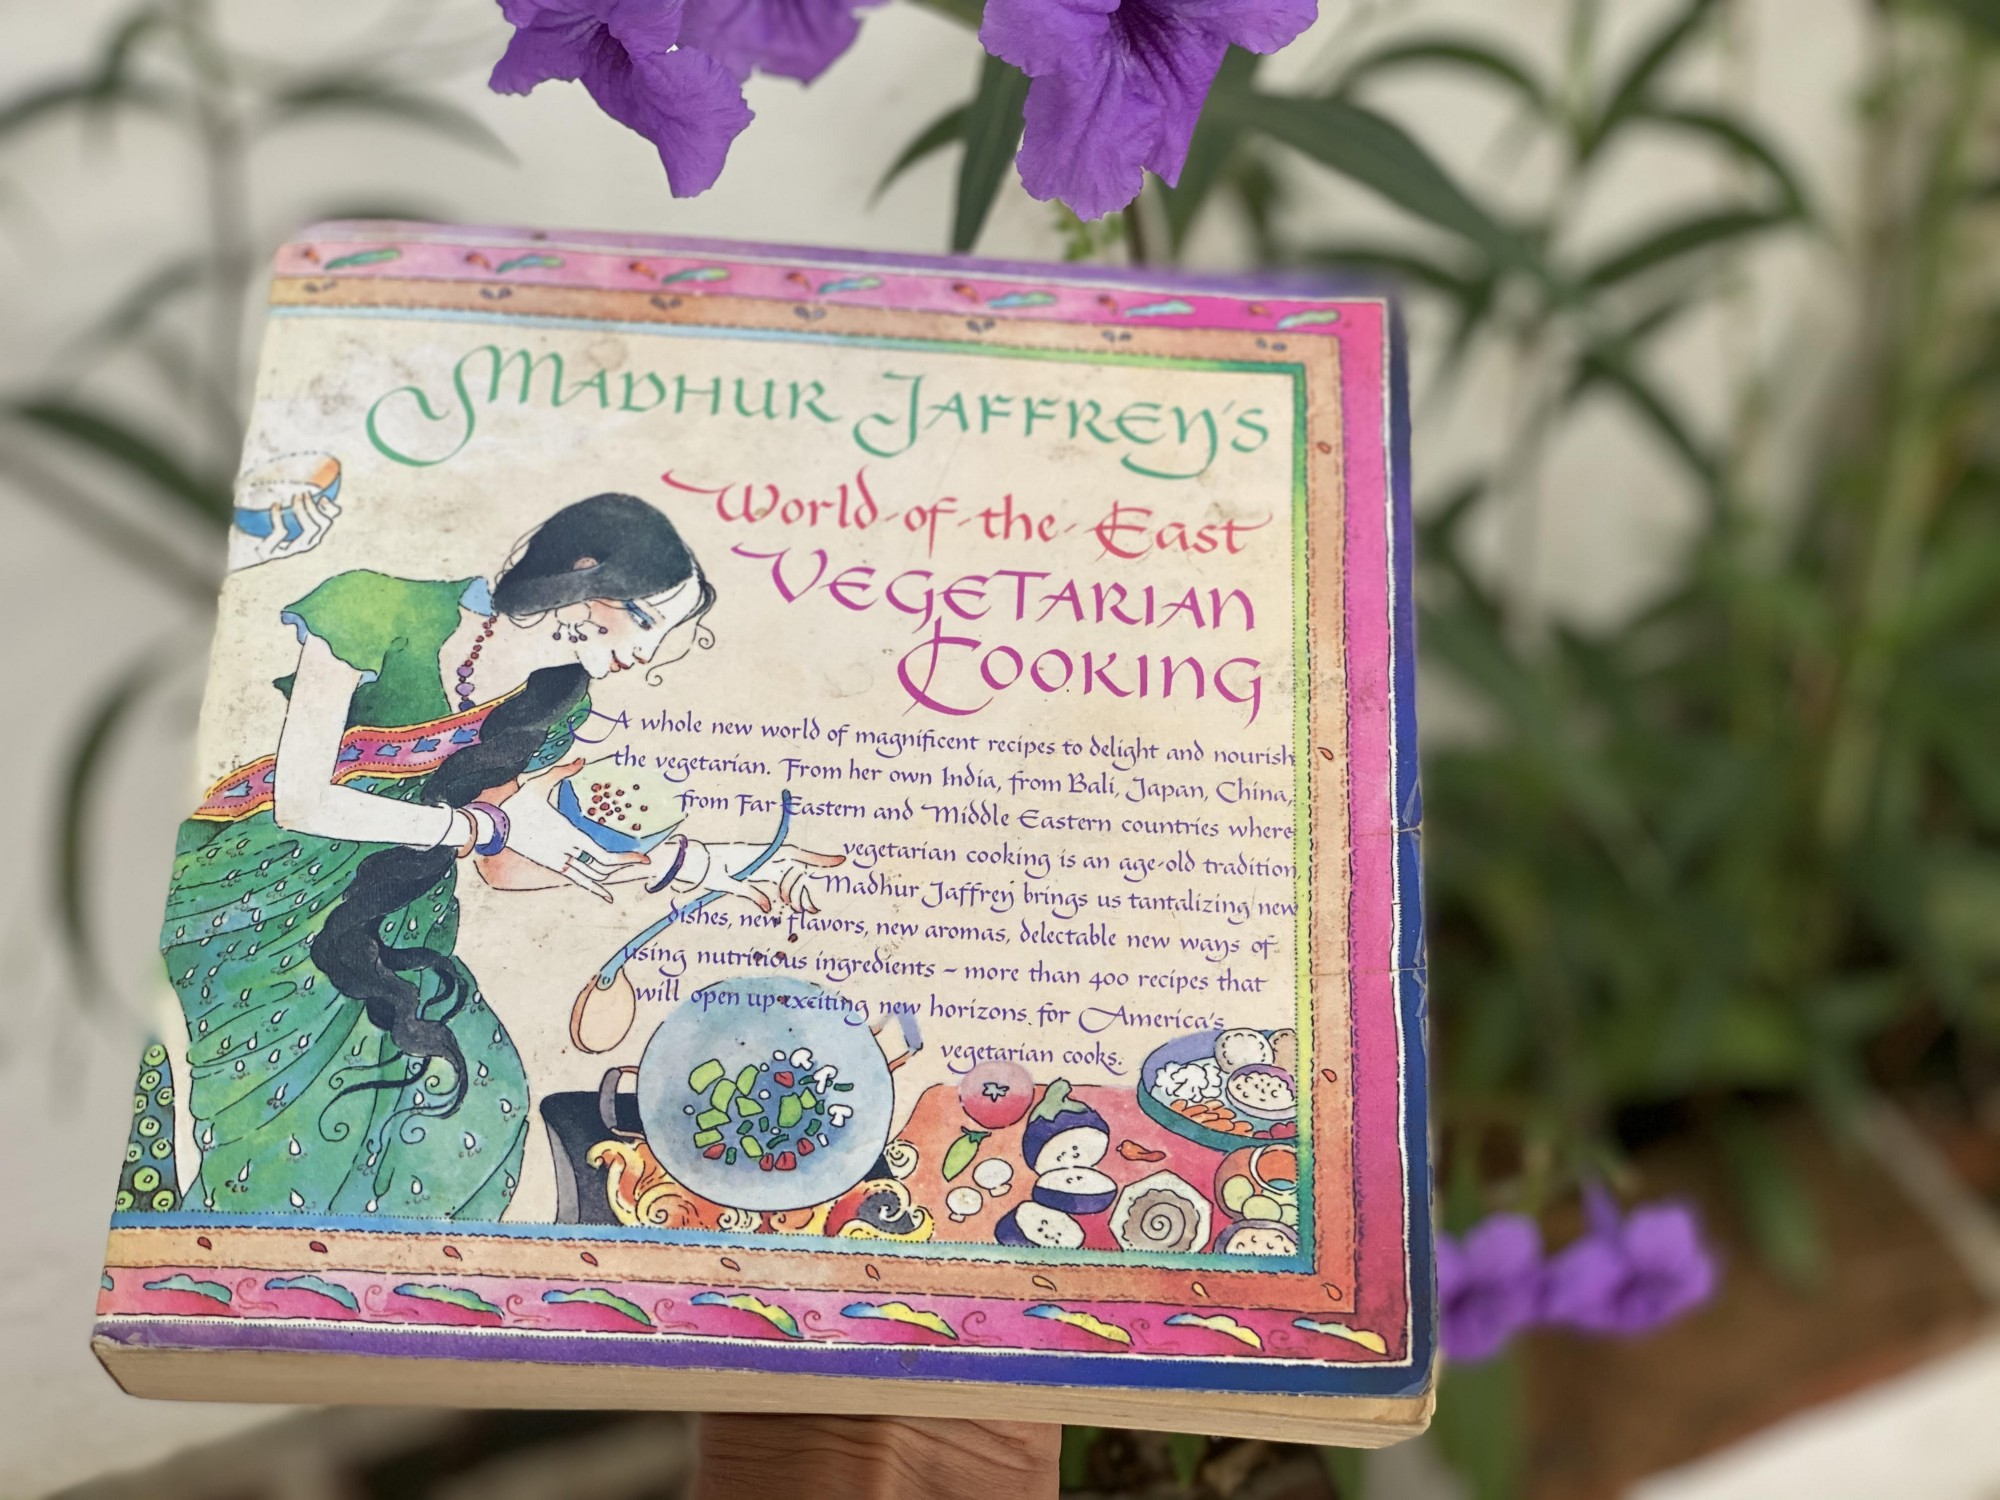 Madhur Jaffrey's World of the East Vegetarian Cookbook book cover is pictured, with an Asian-inspired font and illustration